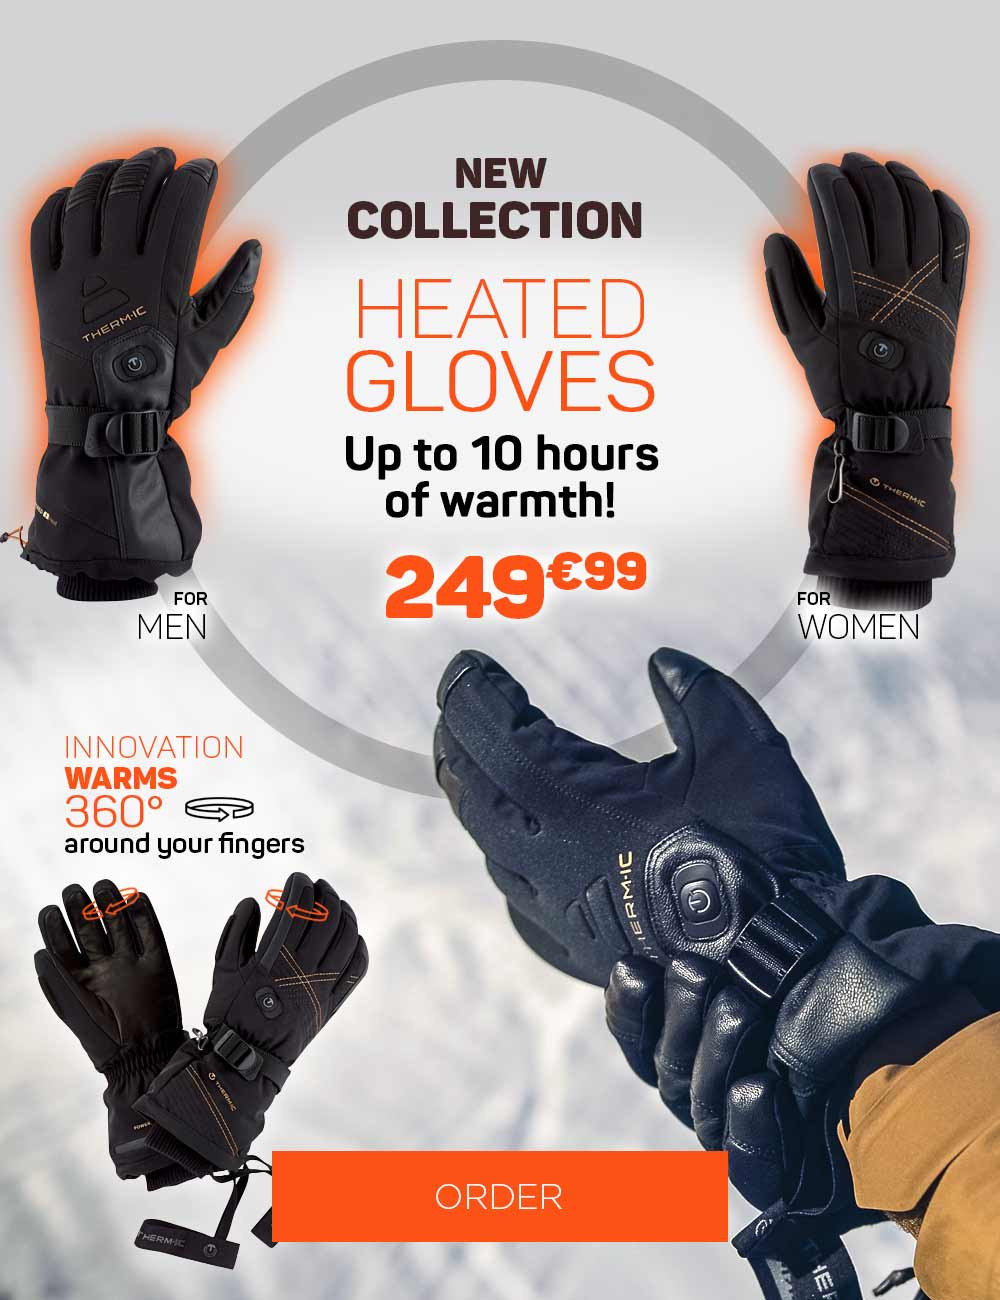 Discover our new collection of heated gloves, up to 10h of warmth!